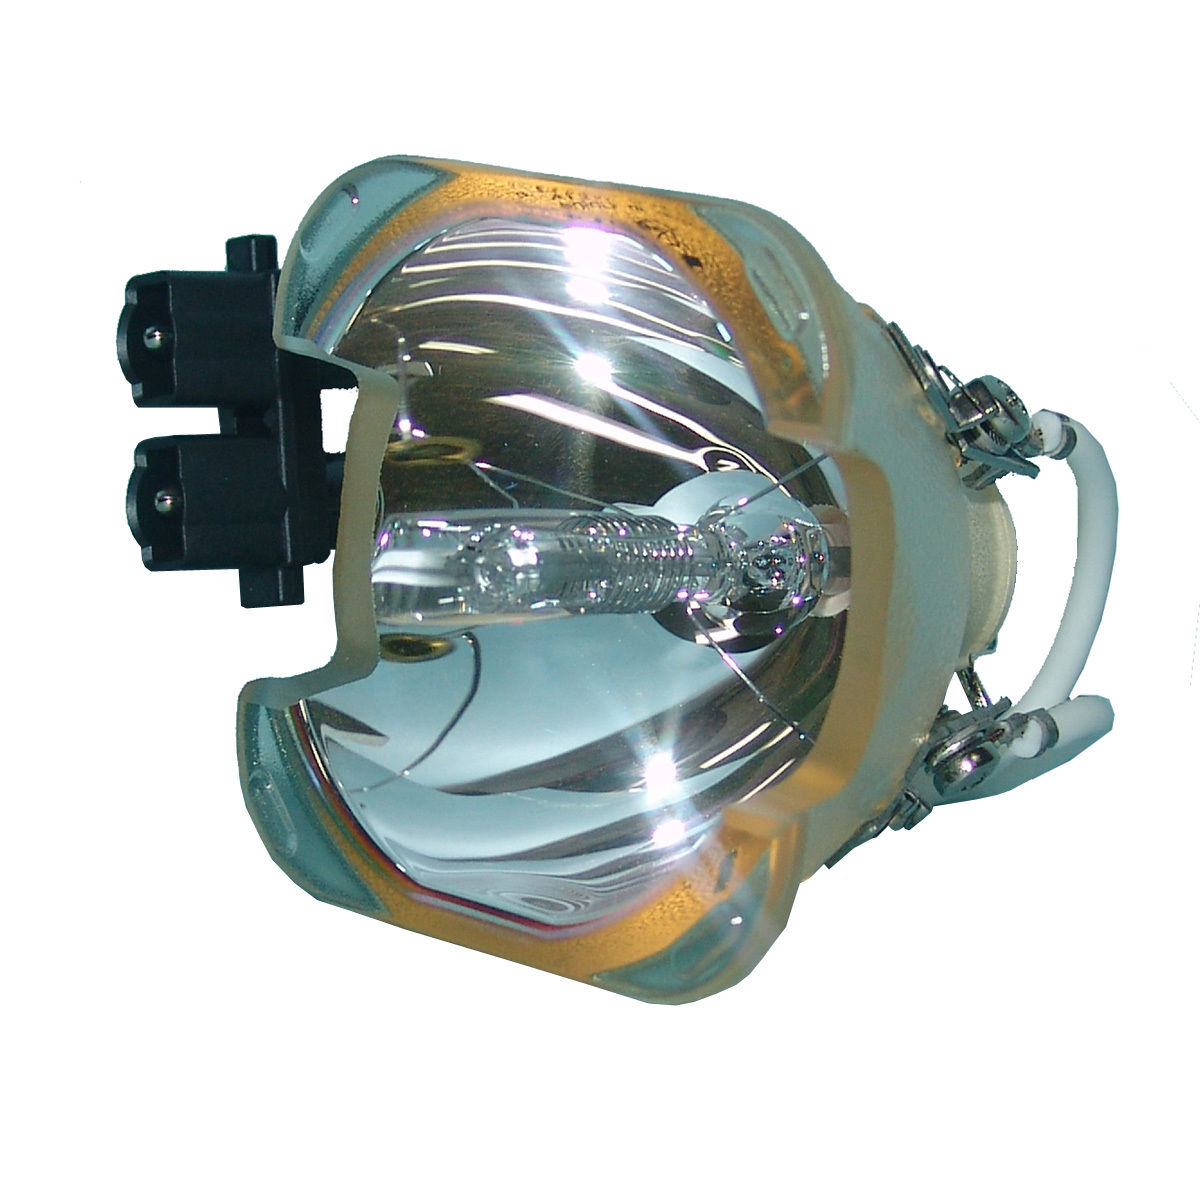 Compatible Bare Bulb 60.J7693.CG1 for BENQ PB7230 PB7235 PE7100 PE8250 Projector Lamp Bulb without Housing replacement compatible bare bulb 5j 08g01 001 lamp for benq mp730 projector